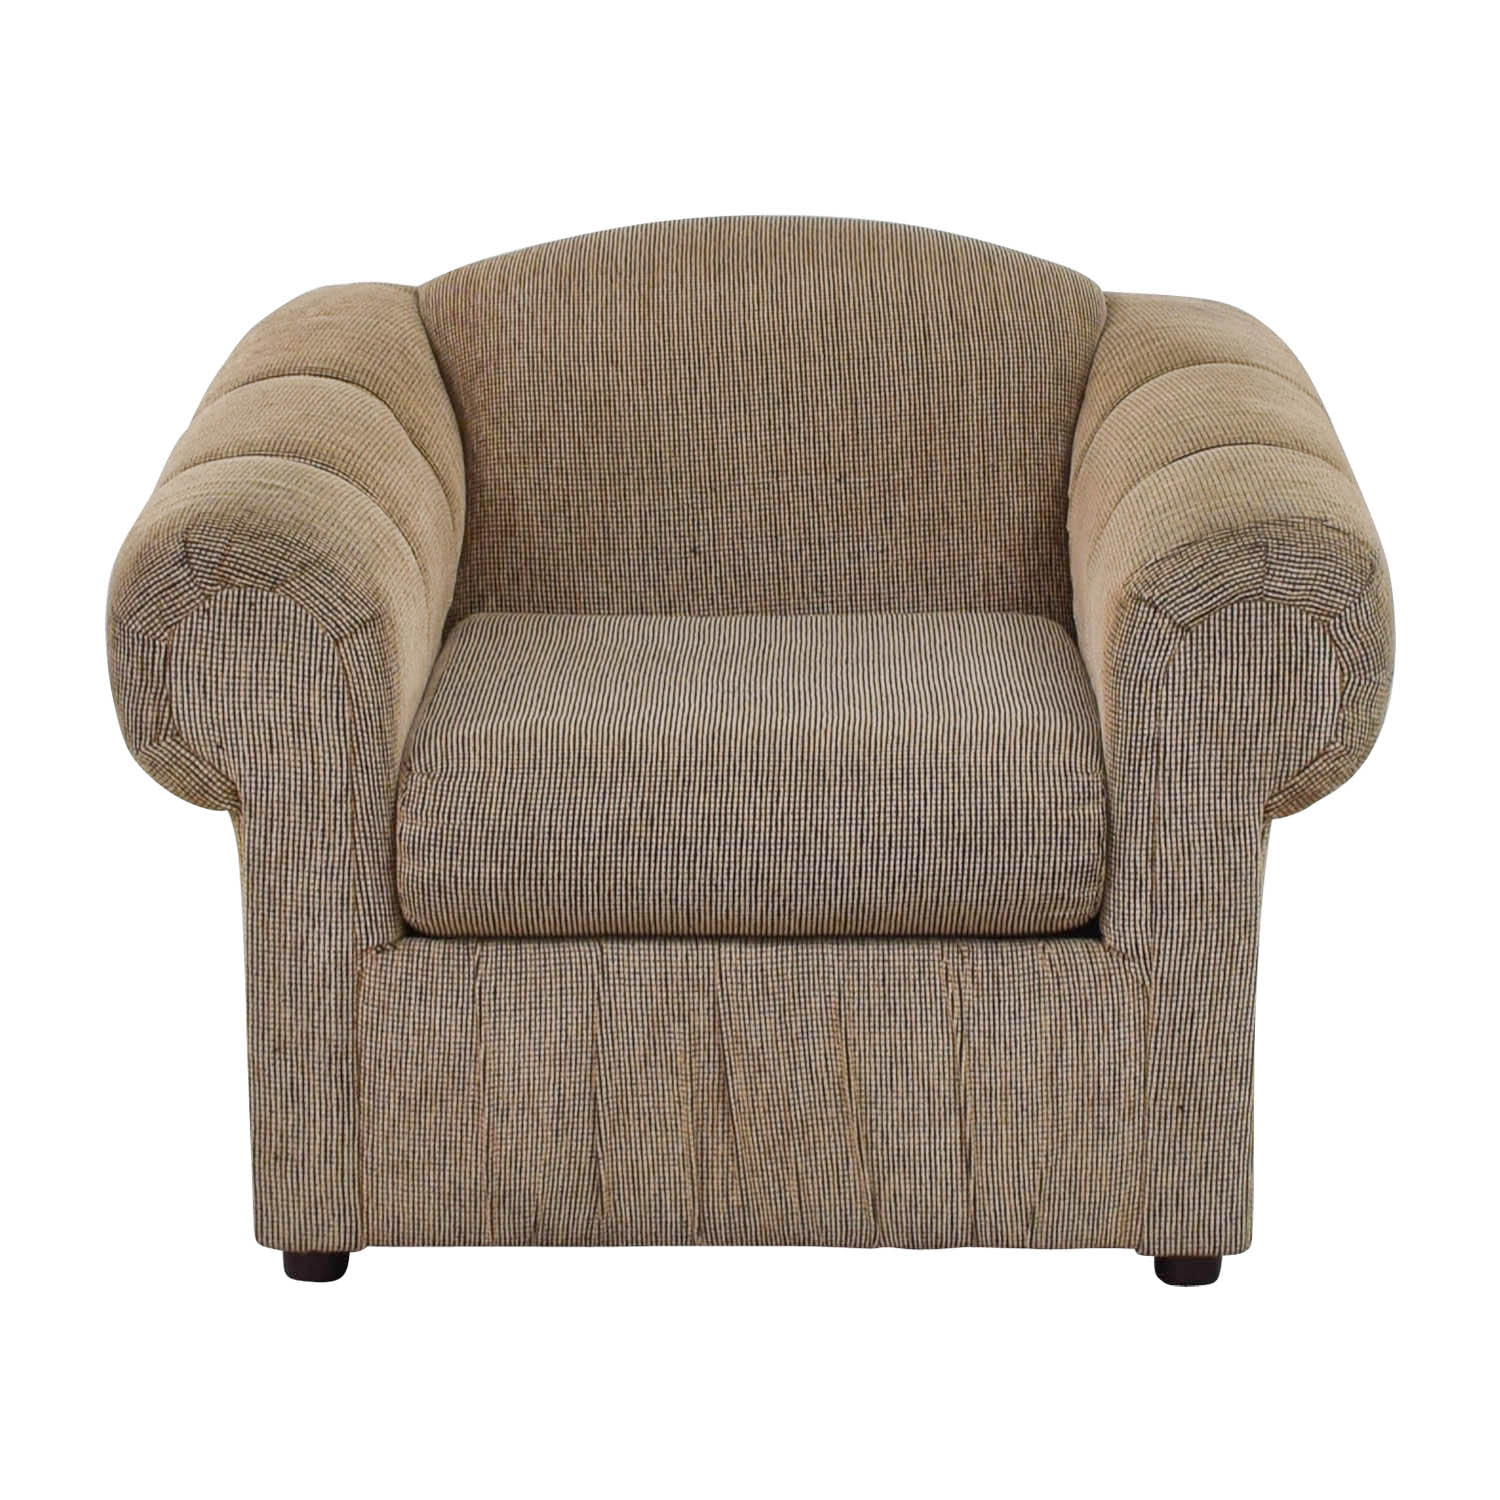 Tan Rolled Arm Accent Chair Price ...